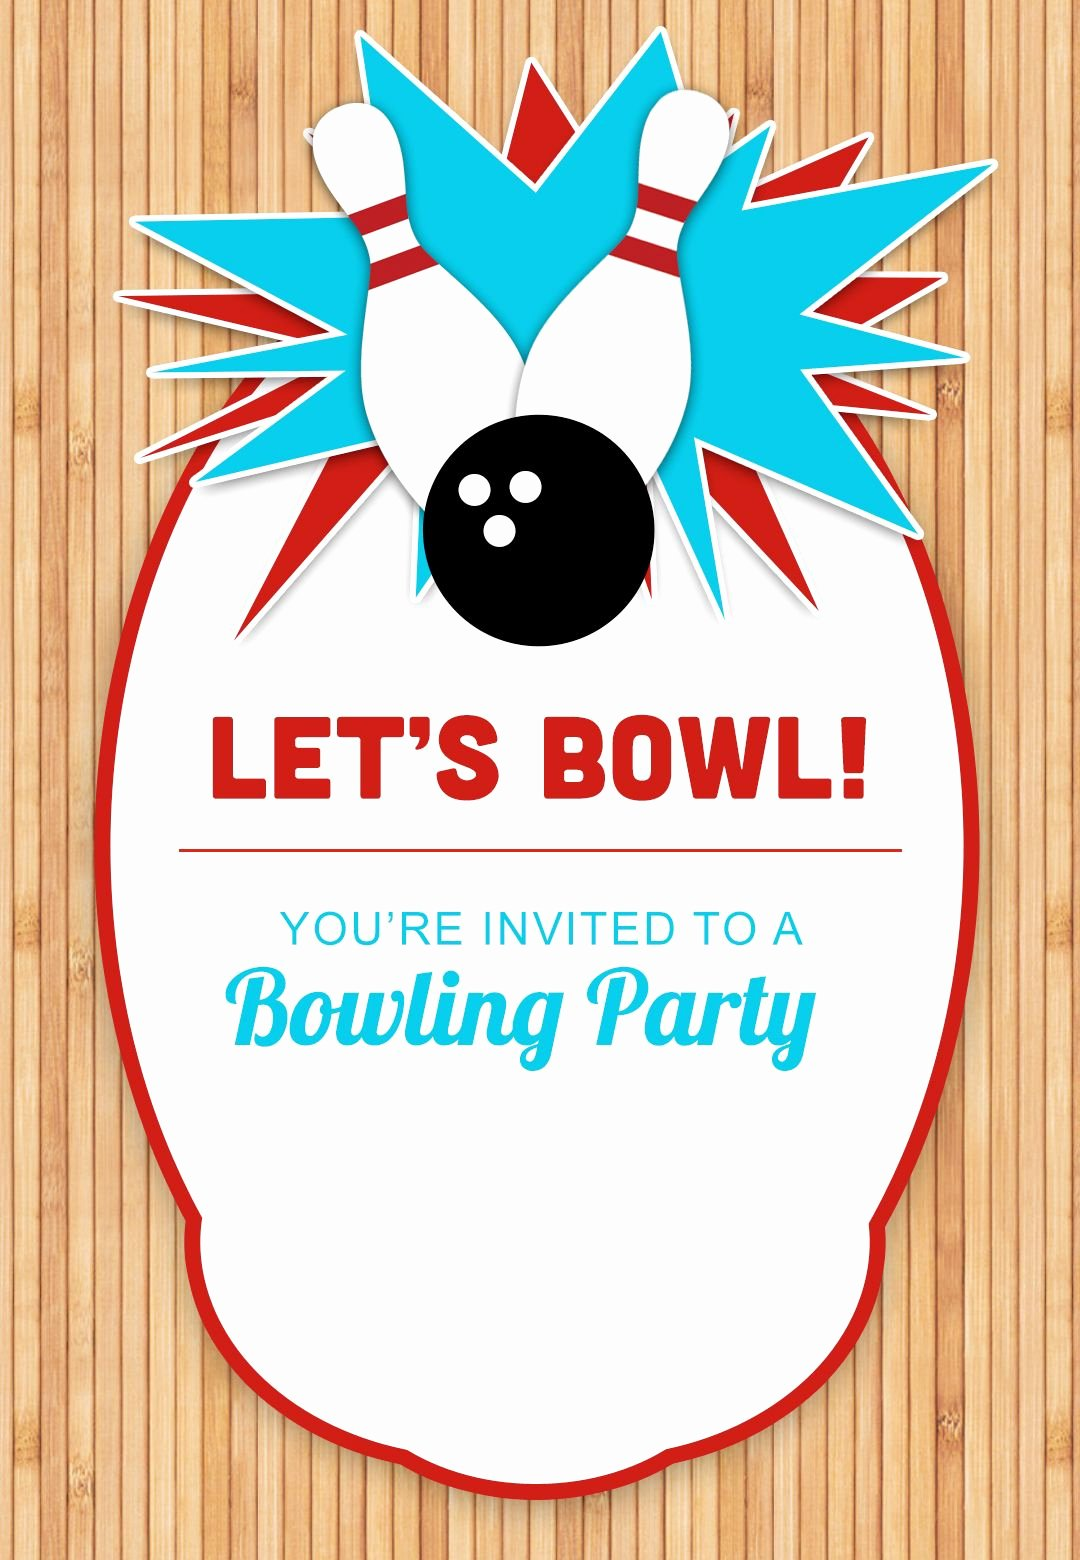 Bowling Party Invitations Templates Lovely Bowling Party Free Printable Birthday Invitation